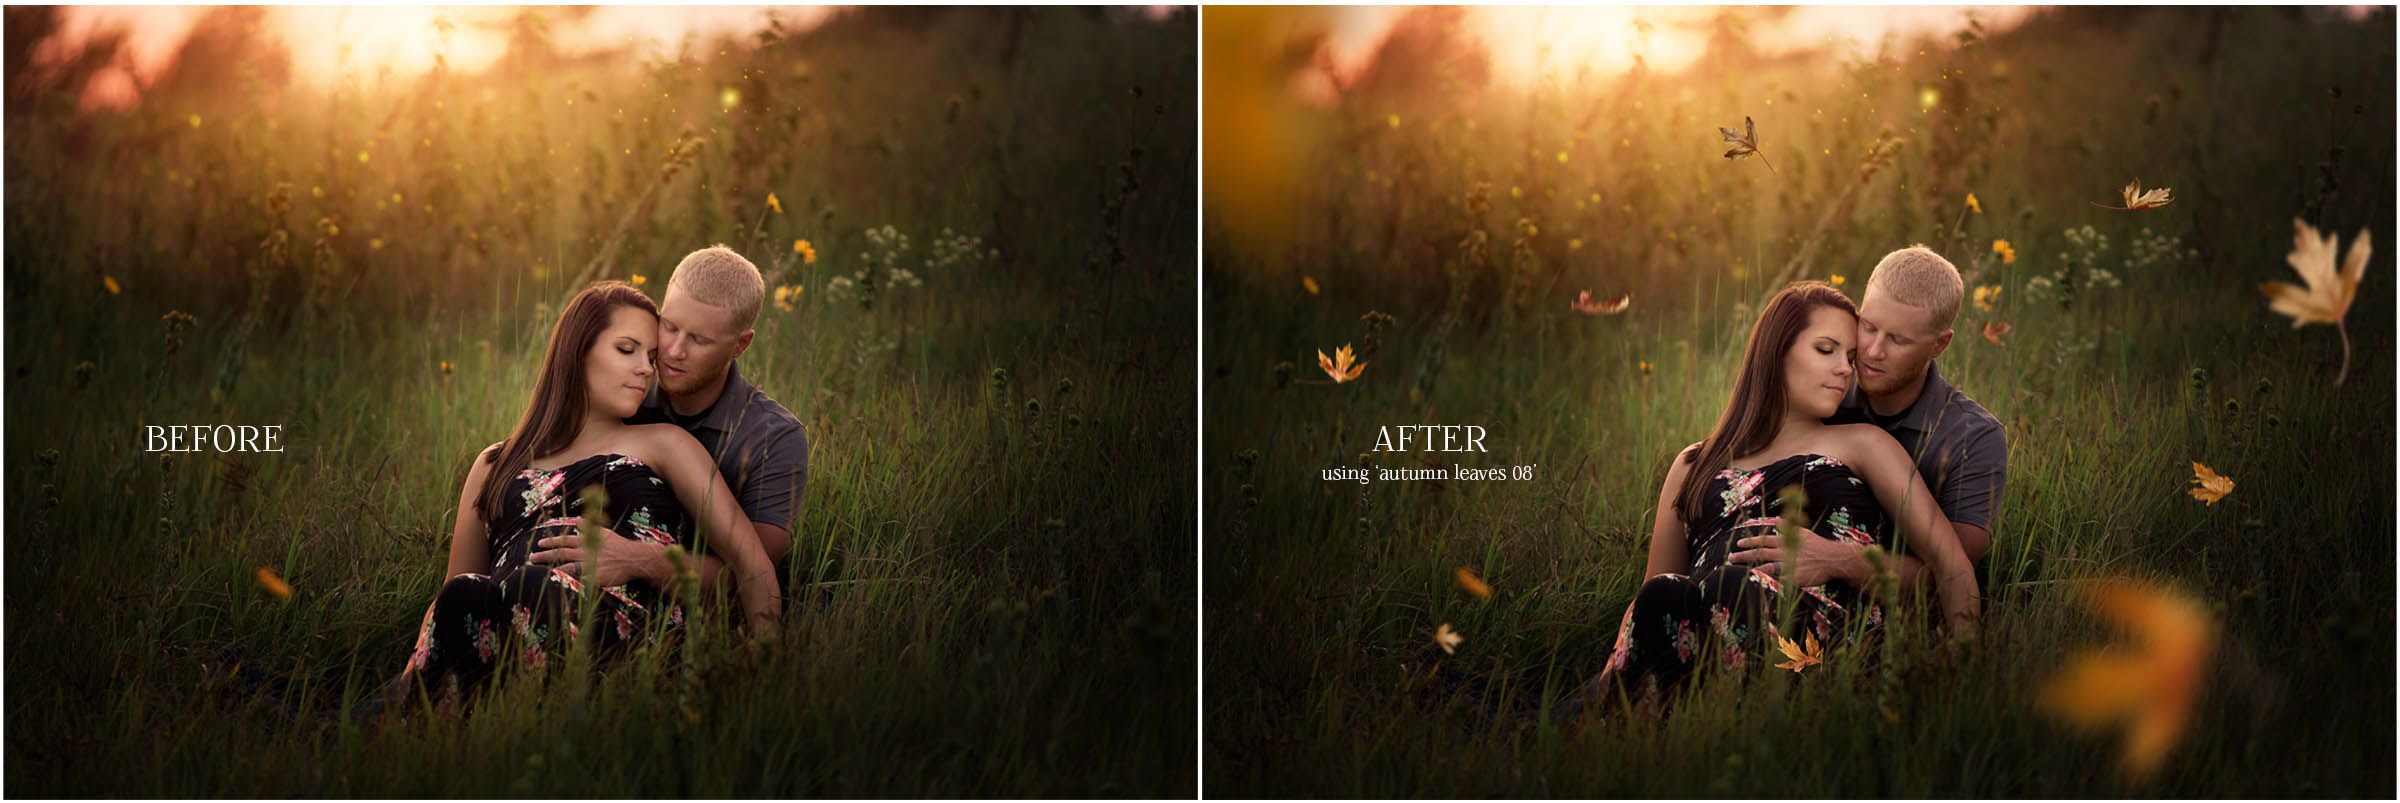 Add the look of gently falling leaves to your images with these gorgeous Autumn Leaf Overlays for Photoshop & Elements!